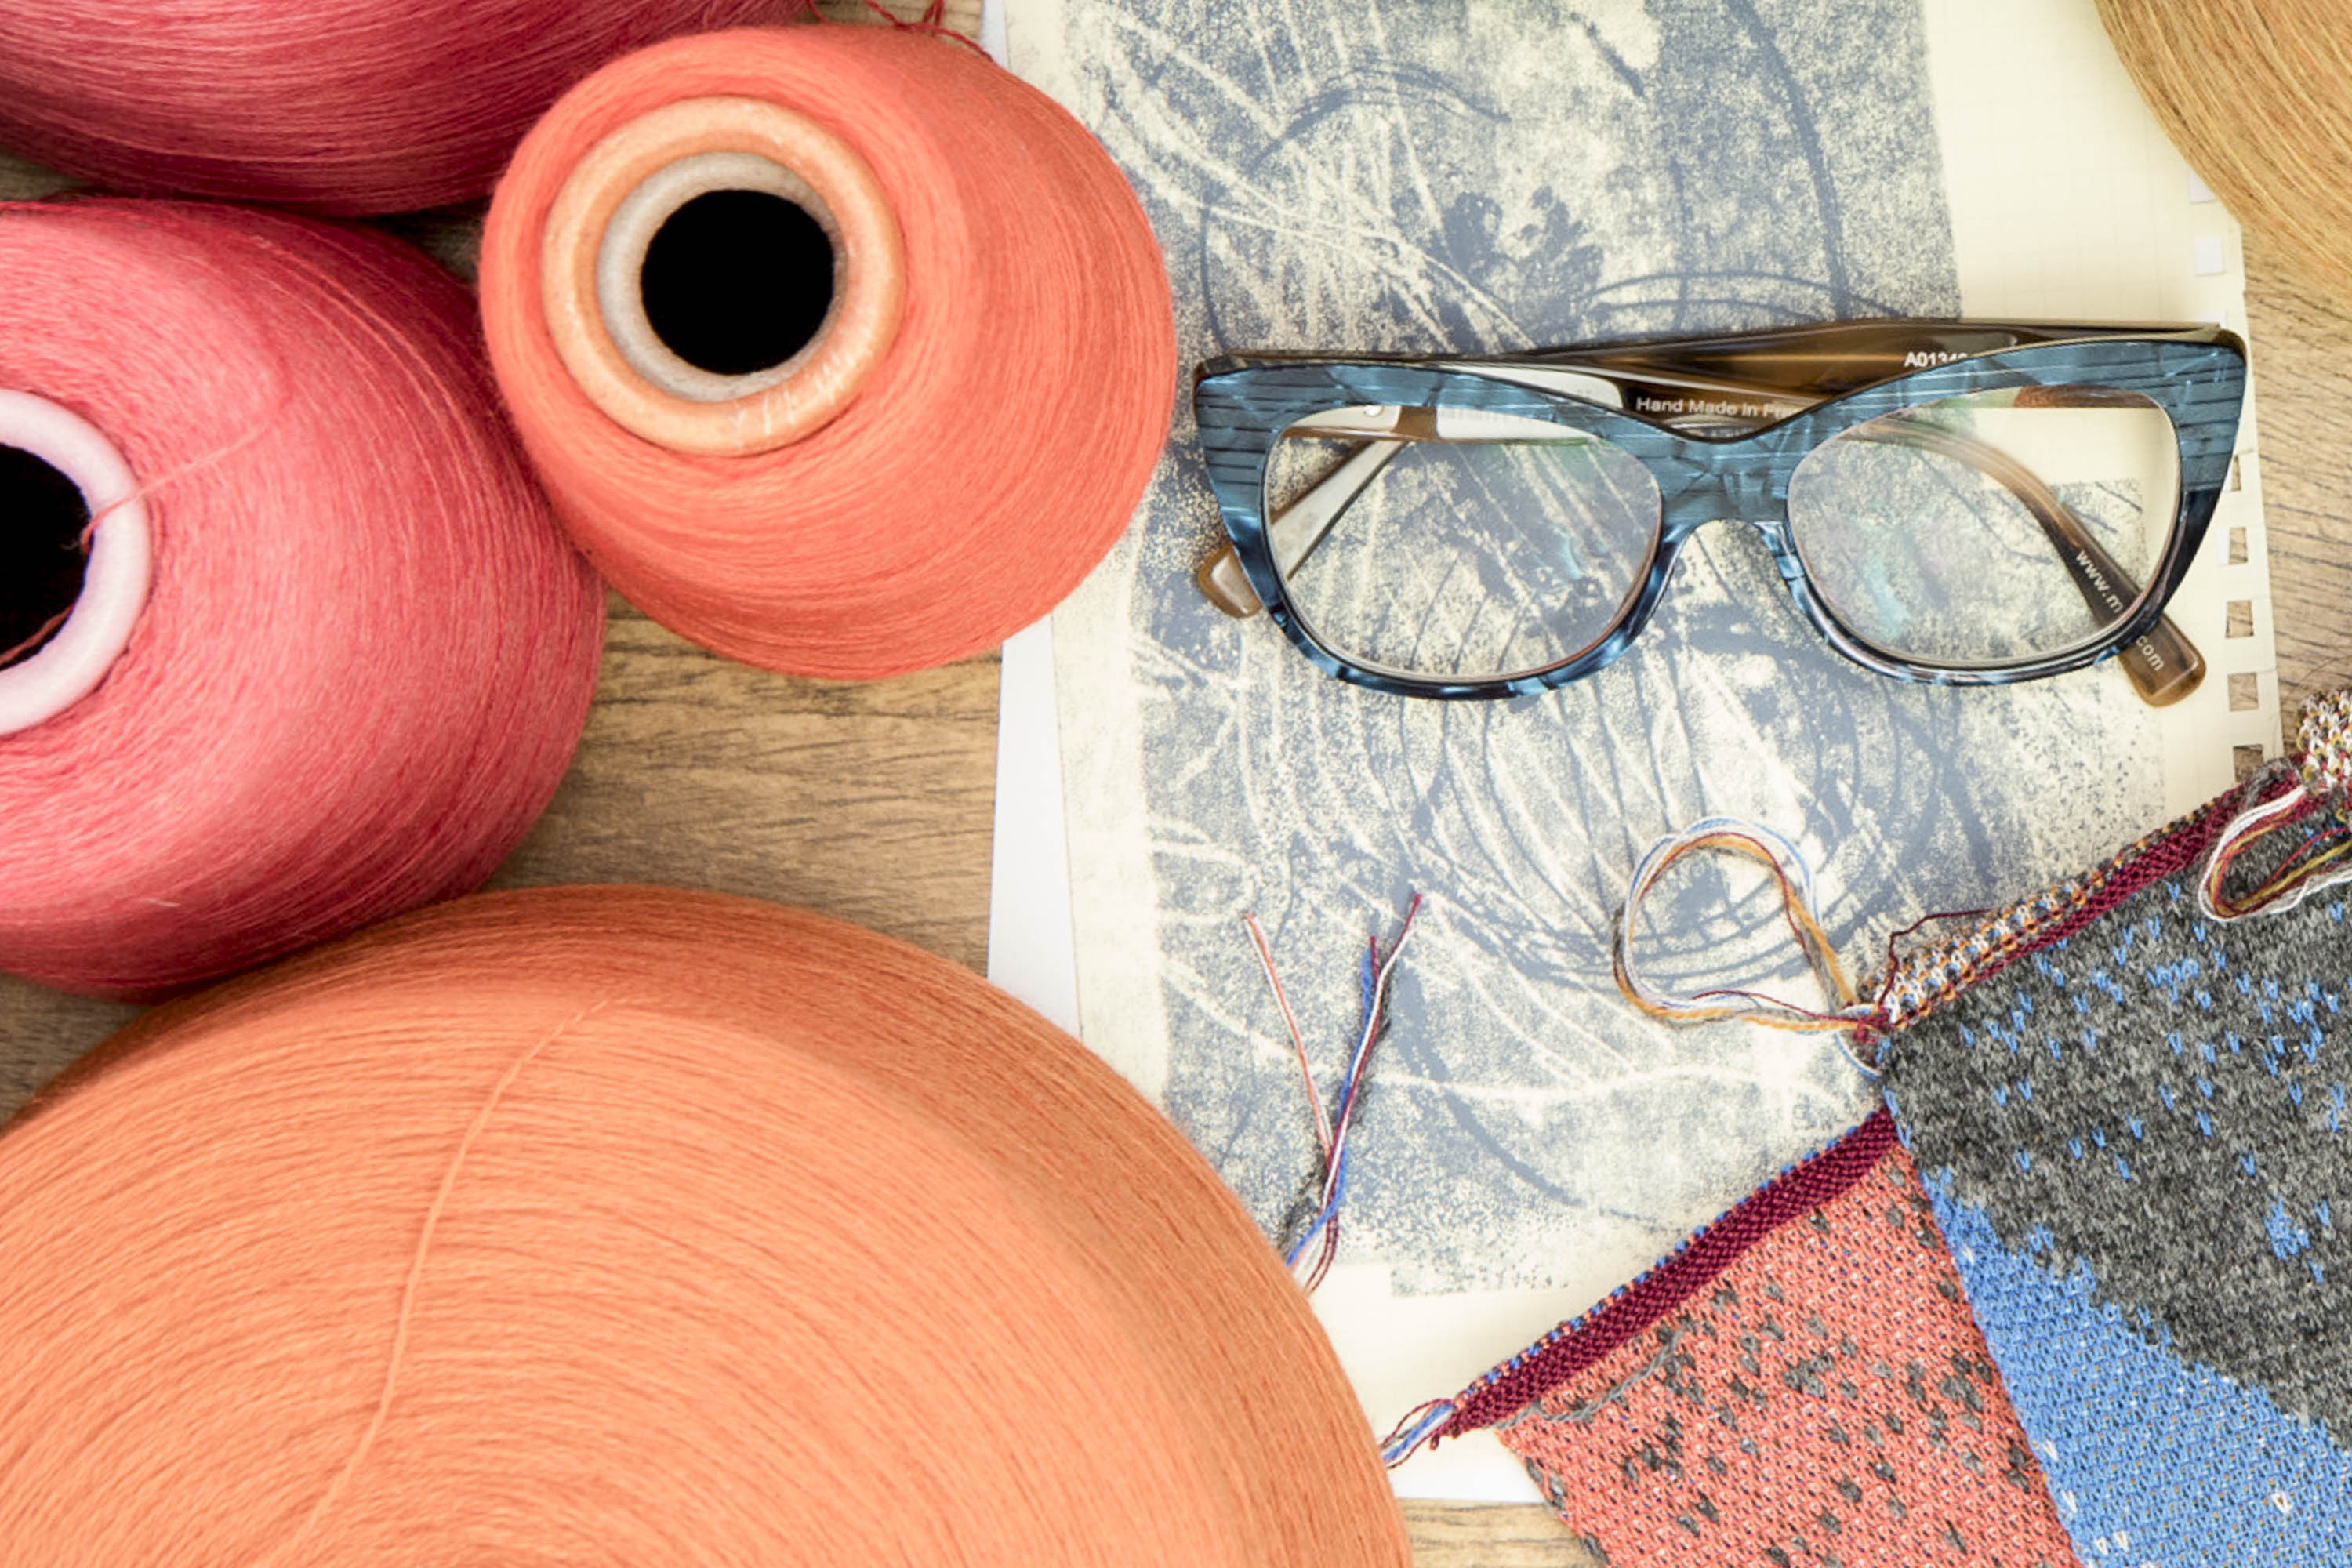 Blue patterned spectacles, a print, cones of yarn, knit sample swatches all laid flat on a table at Nielanell contemporary knitwear studio, Shetland.